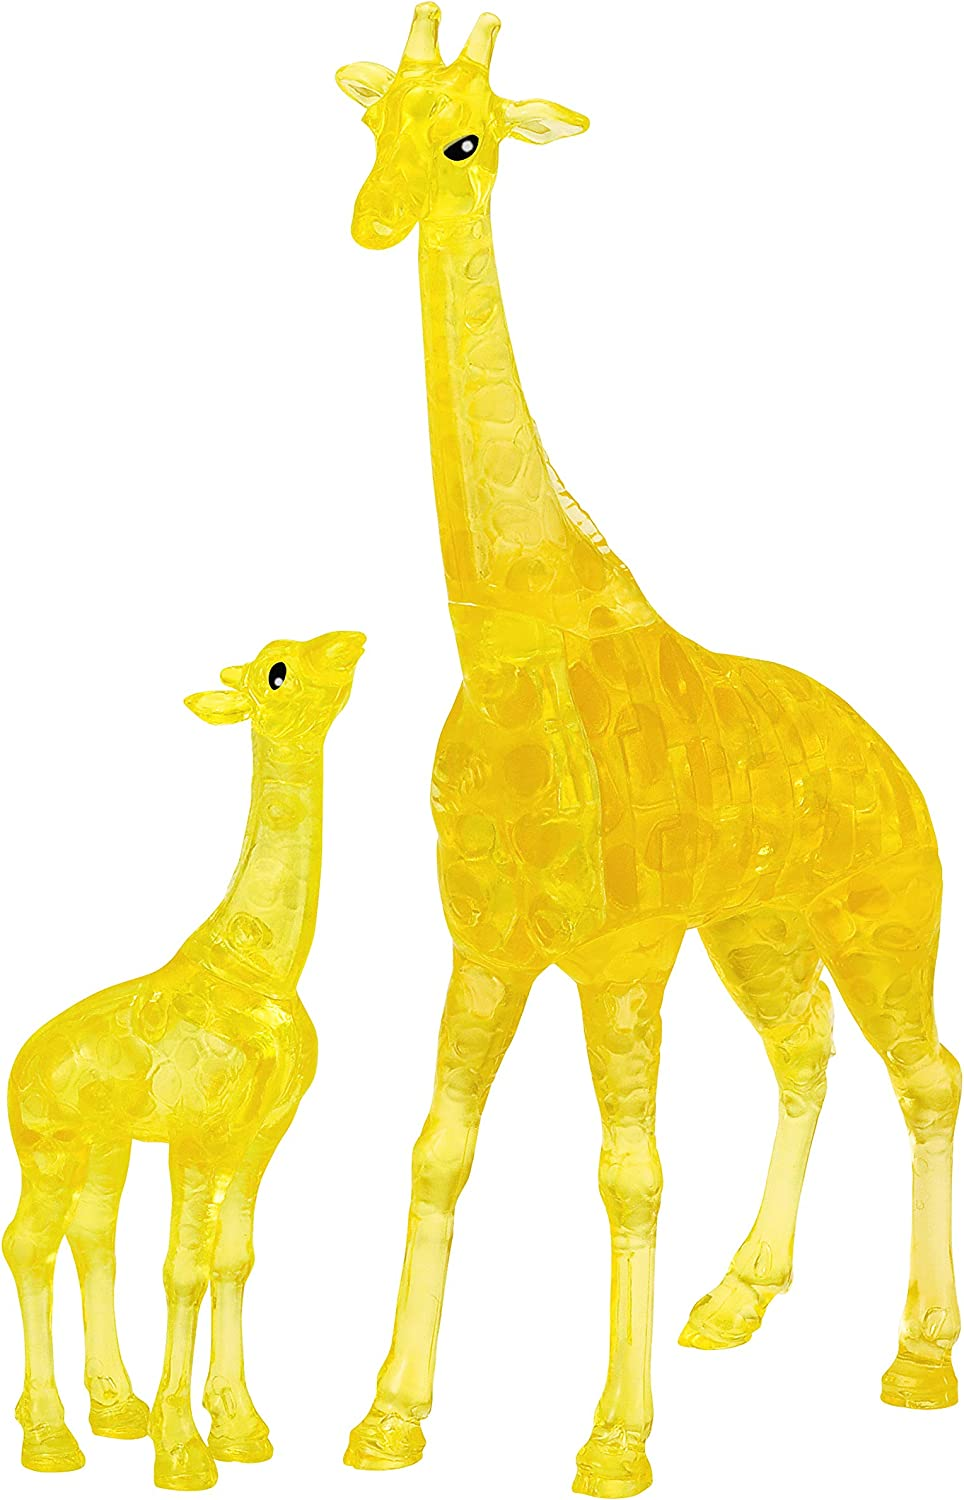 BePuzzled Original 3D Crystal Jigsaw Puzzle - Giraffe & Baby Animal Assembly Brain Teaser, Fun Model Toy Gift Decoration for Adults & Kids Age 12 & Up, 38Piece (Level 1)